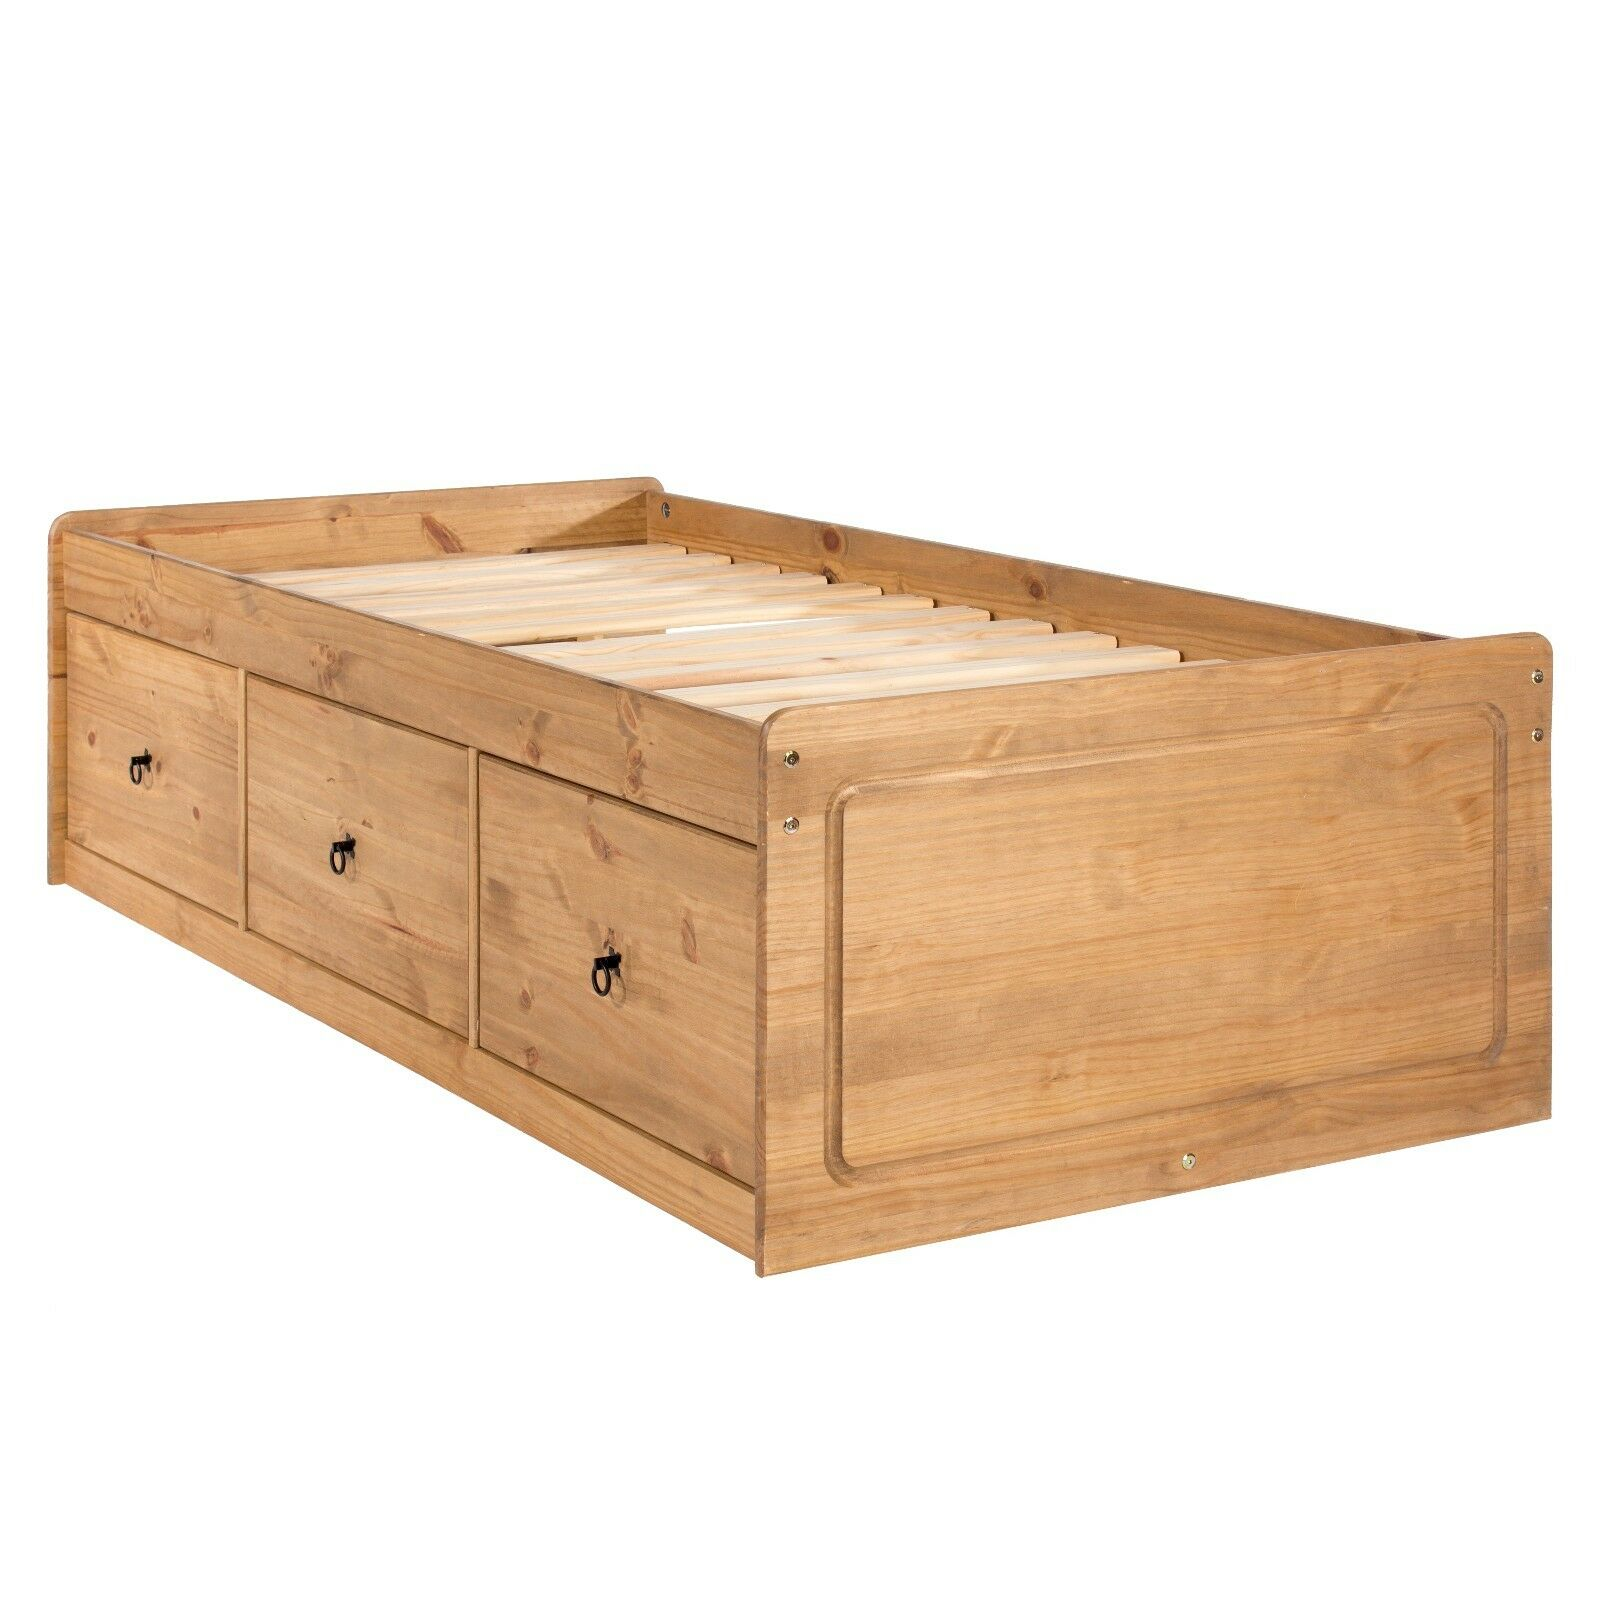 Childrens Bed Cabin Bed With Drawers Thule Solid Pine Wood Bedroom Furniture Ebay